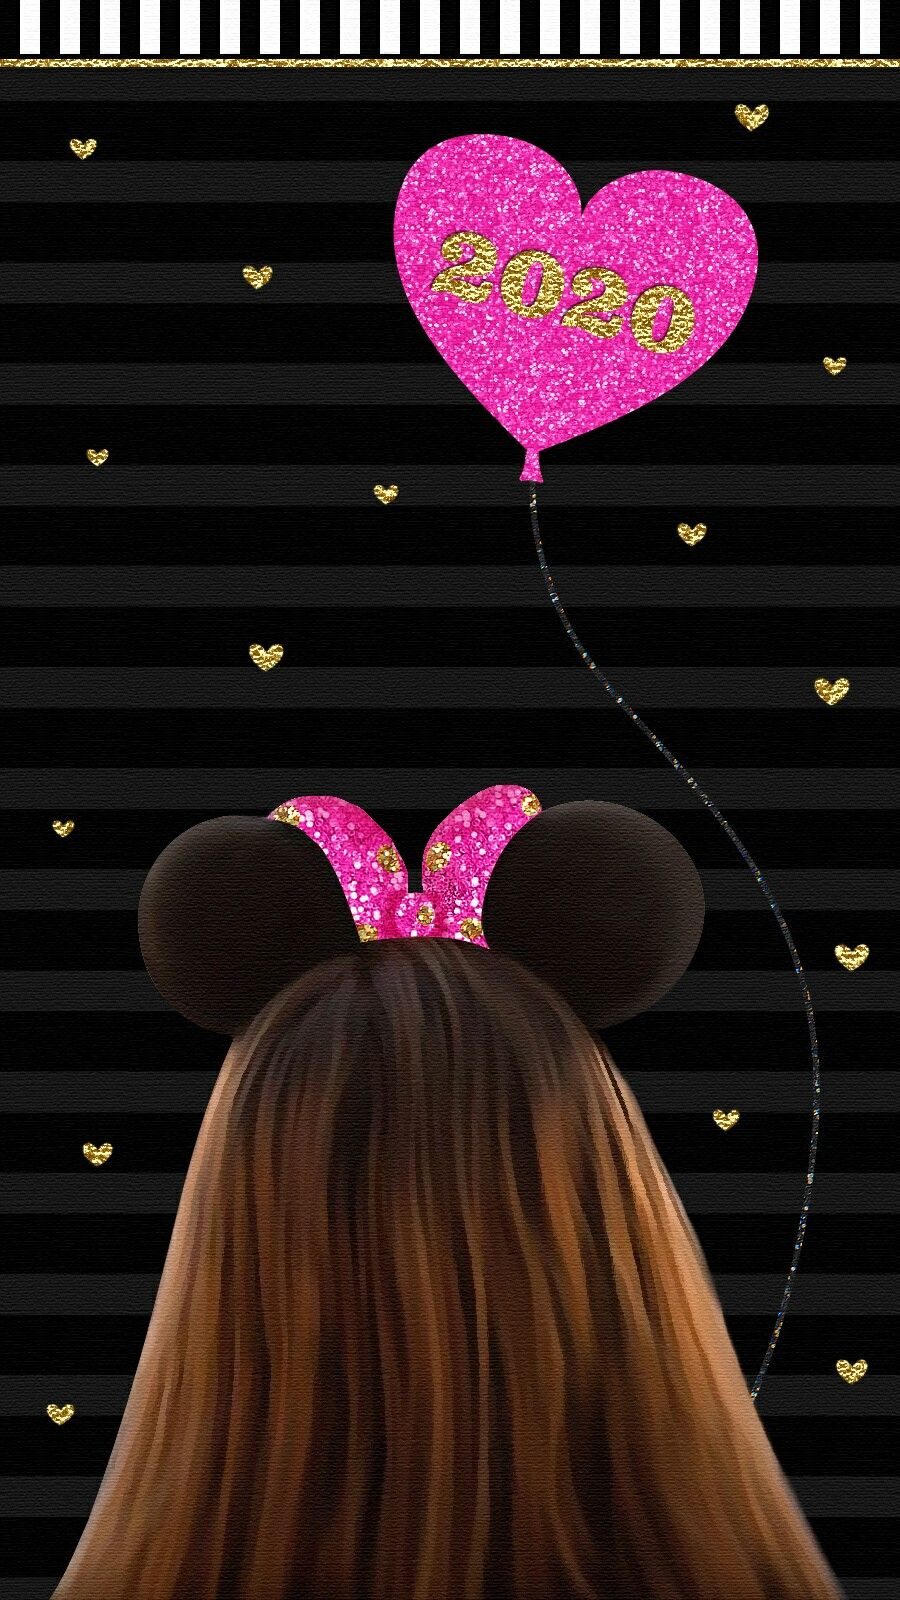 Pin by 🎀 Sofia 🎀 on Cute walls by me♡ Cute backgrounds